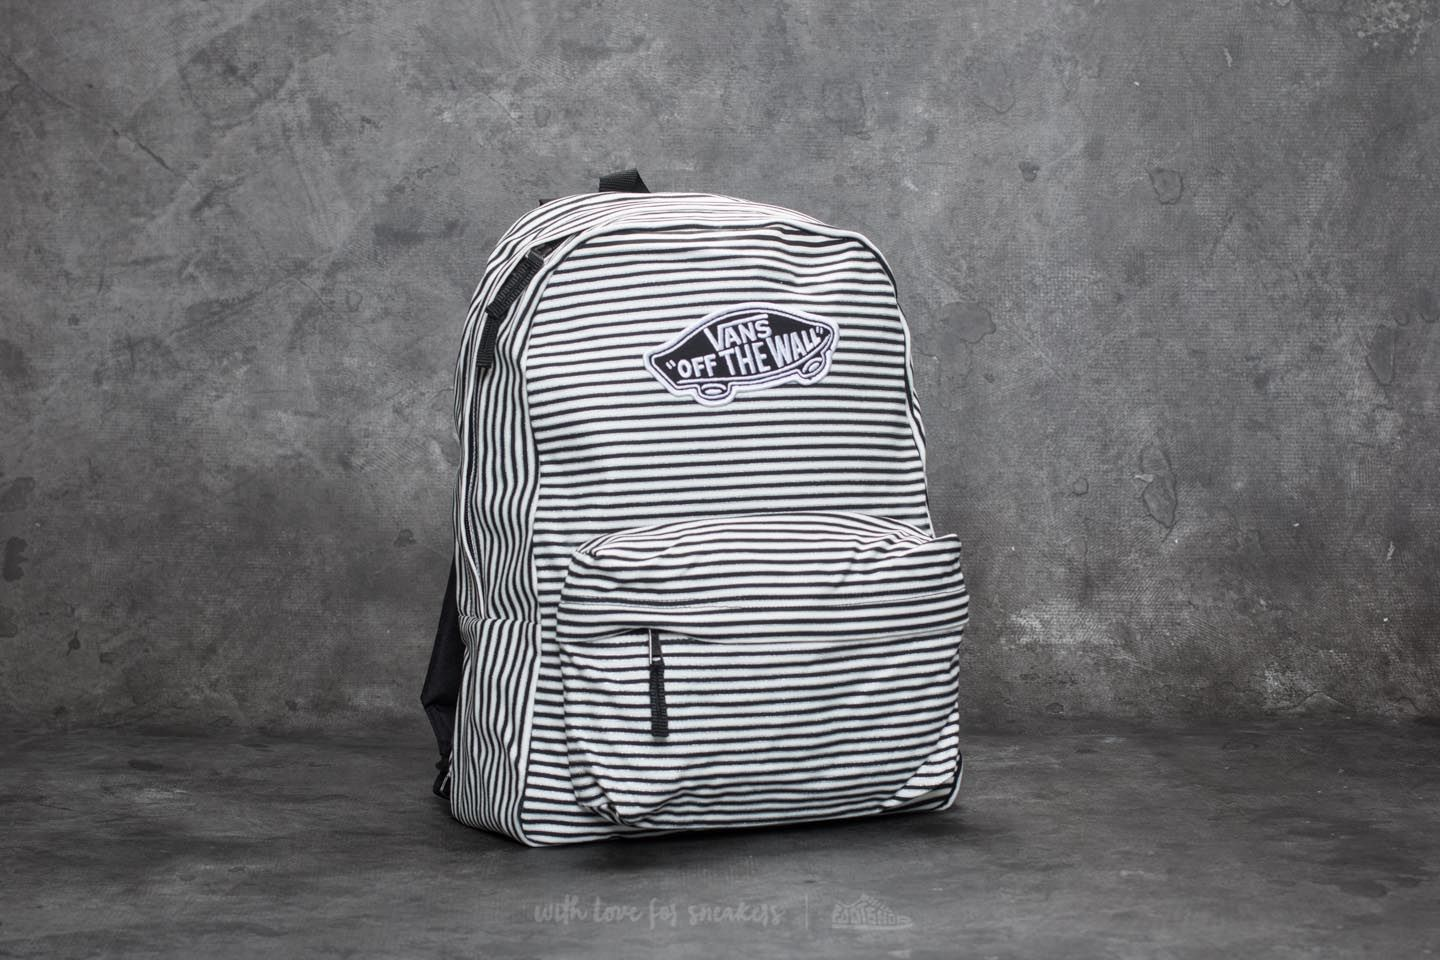 Marshmallow Realm Vans Vans Backpack Realm vCCyB7c